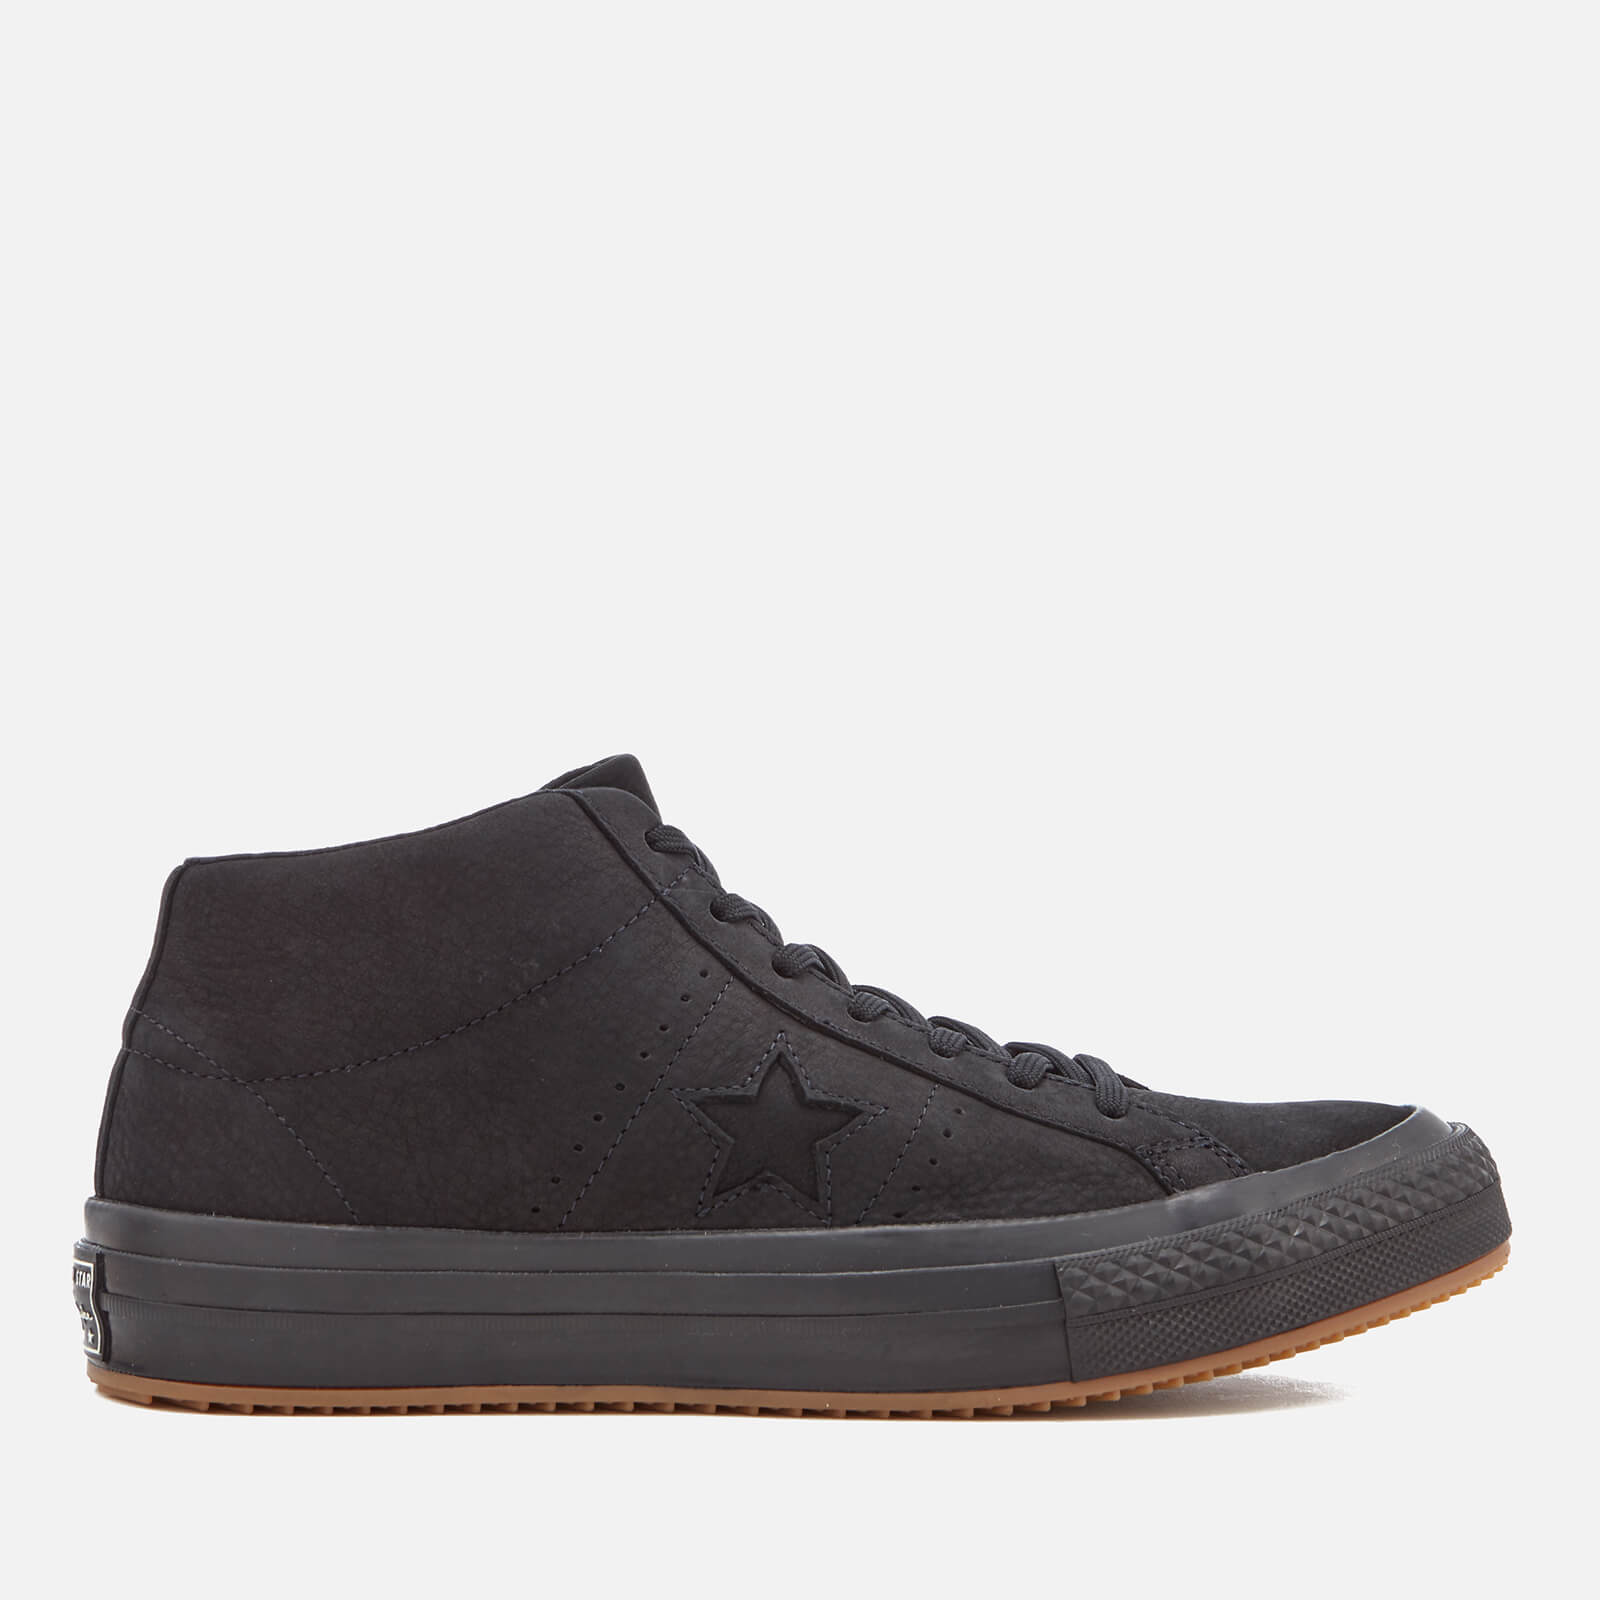 109111304e0ad4 Converse Men s One Star Mid Counter Climate Mid Trainers -  Black Black Black - Free UK Delivery over £50